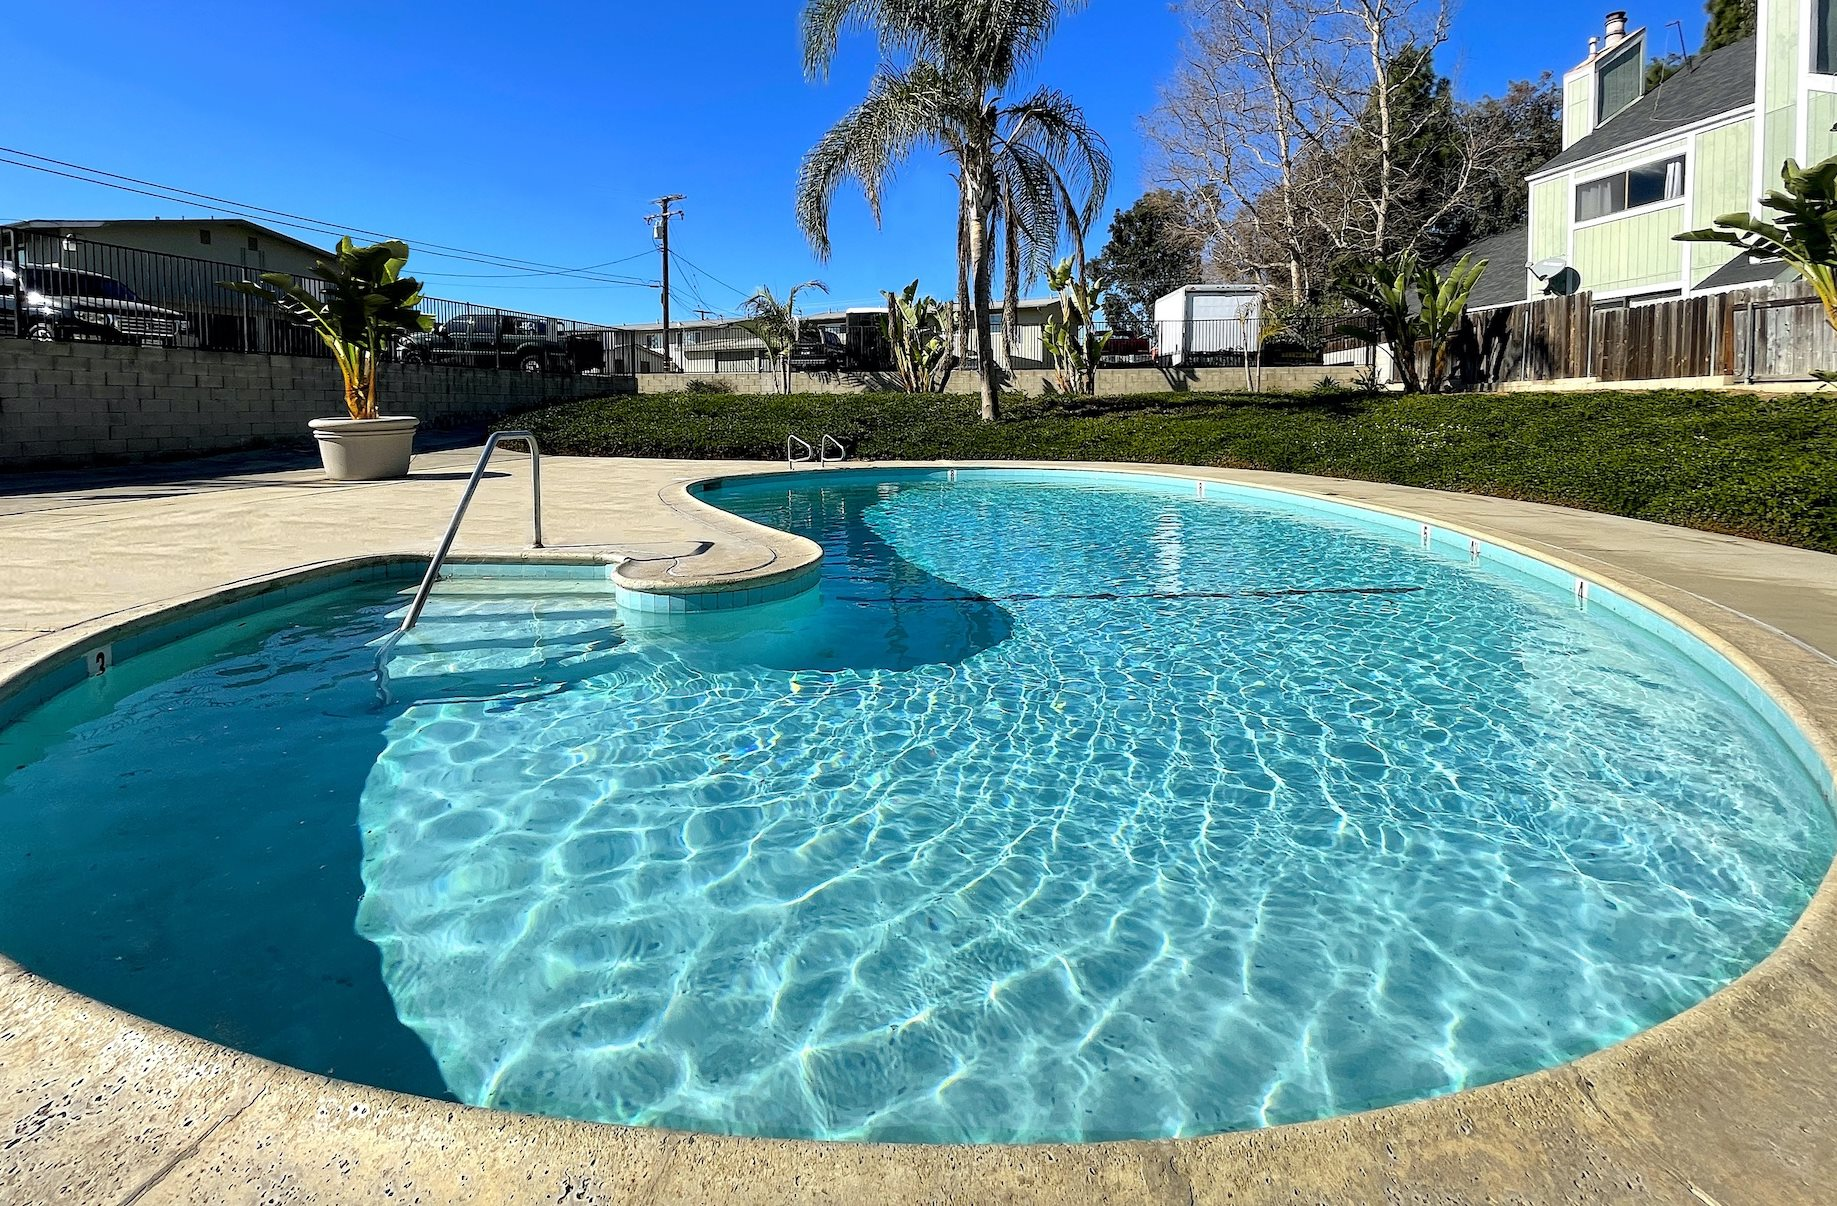 The Wilson Apartments in Costa Mesa, California featuring 2 bedroom apartments and swimming pool.